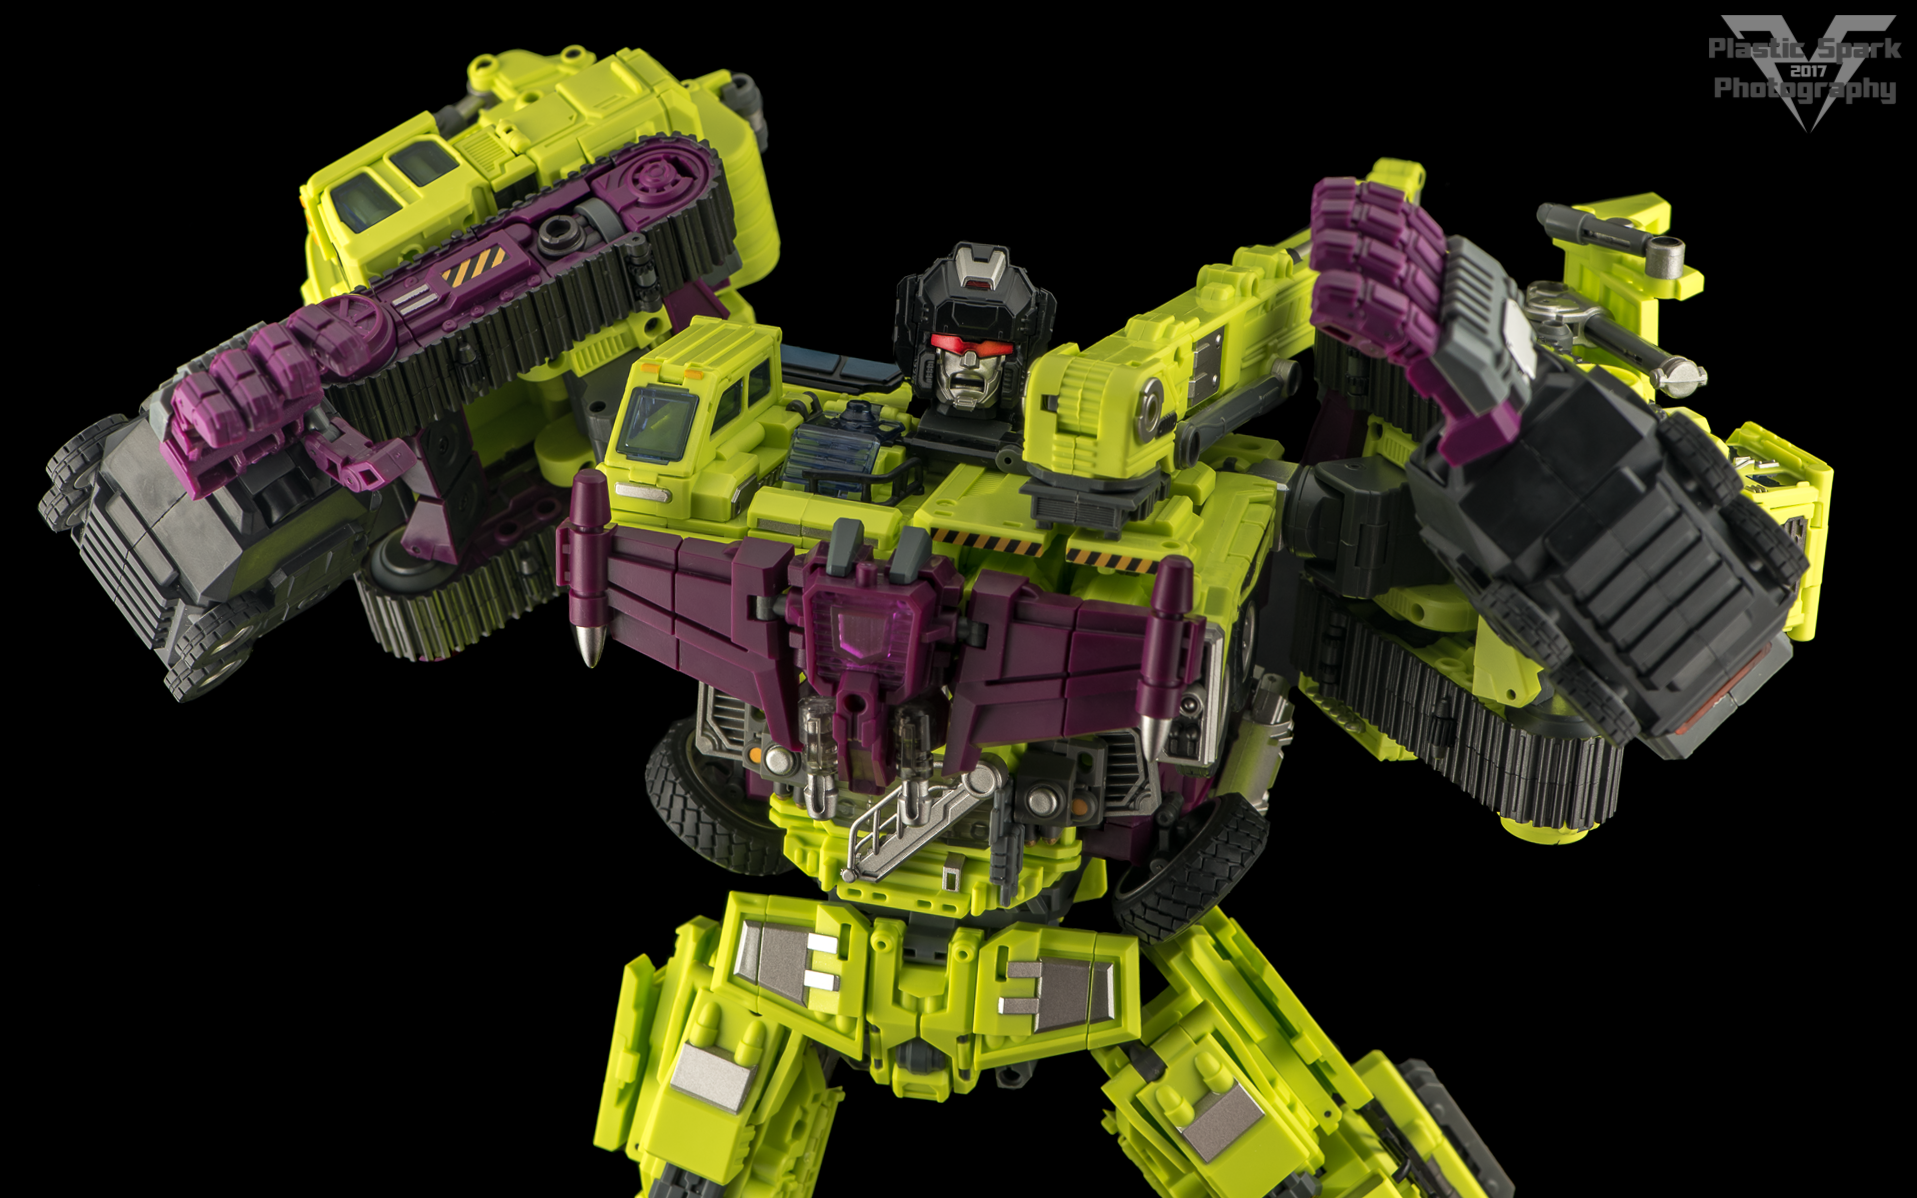 Generation-Toy-Gravity-Builder-(26-of-34).png